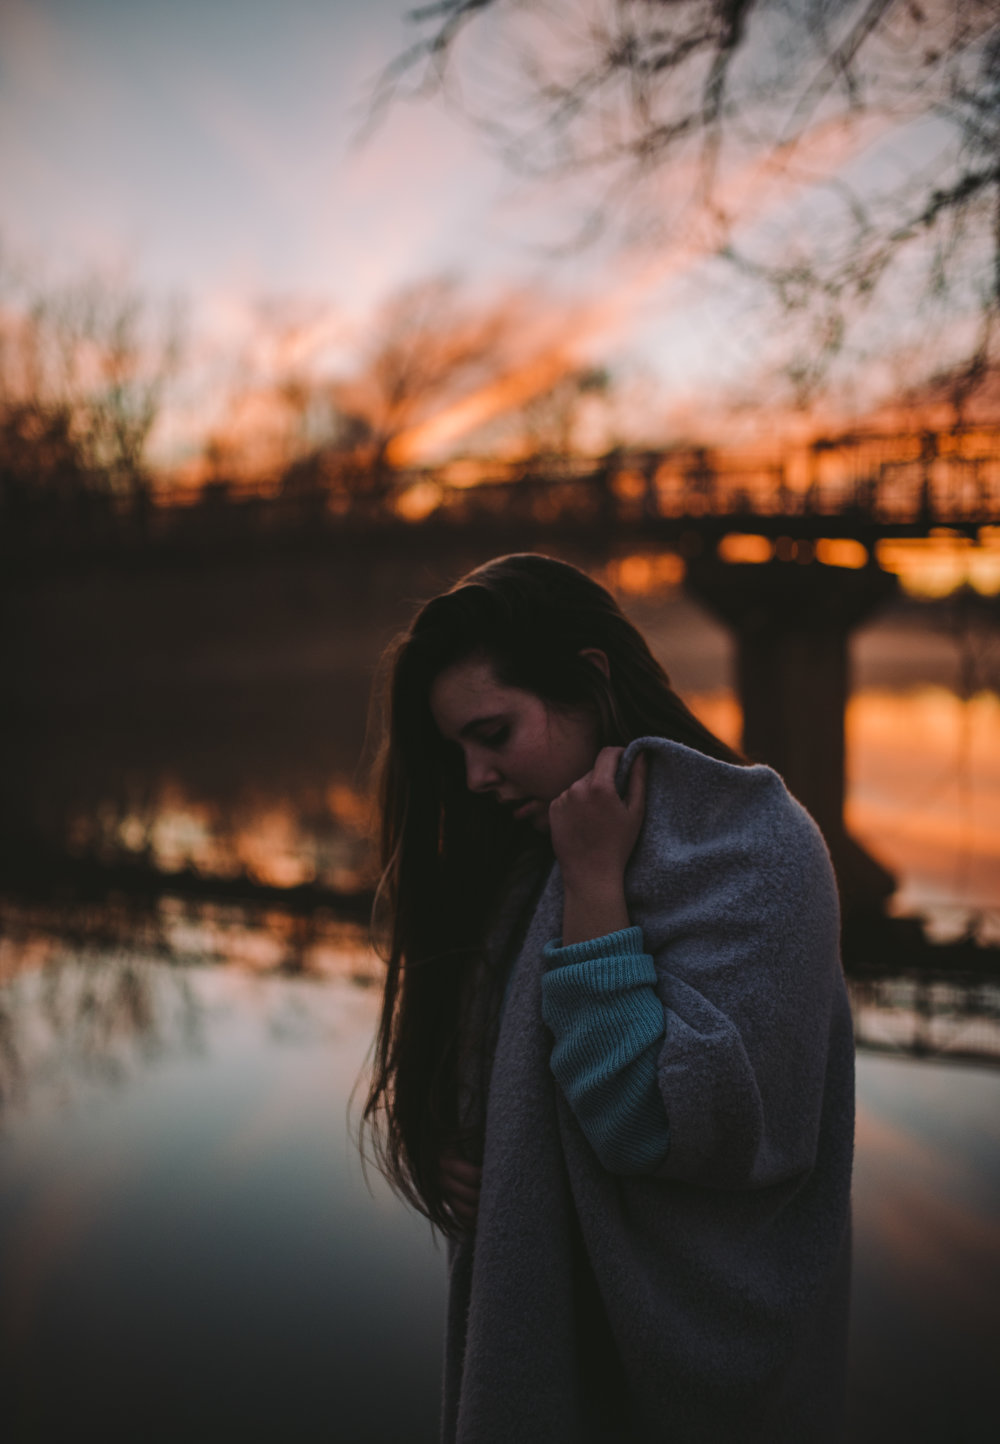 Sunset_IndianapolisIndiana_January2018_Senior Photography In Tempe_ArizonaSeniorPhotographer_SamanthaRosePhotography_final_-4.jpg